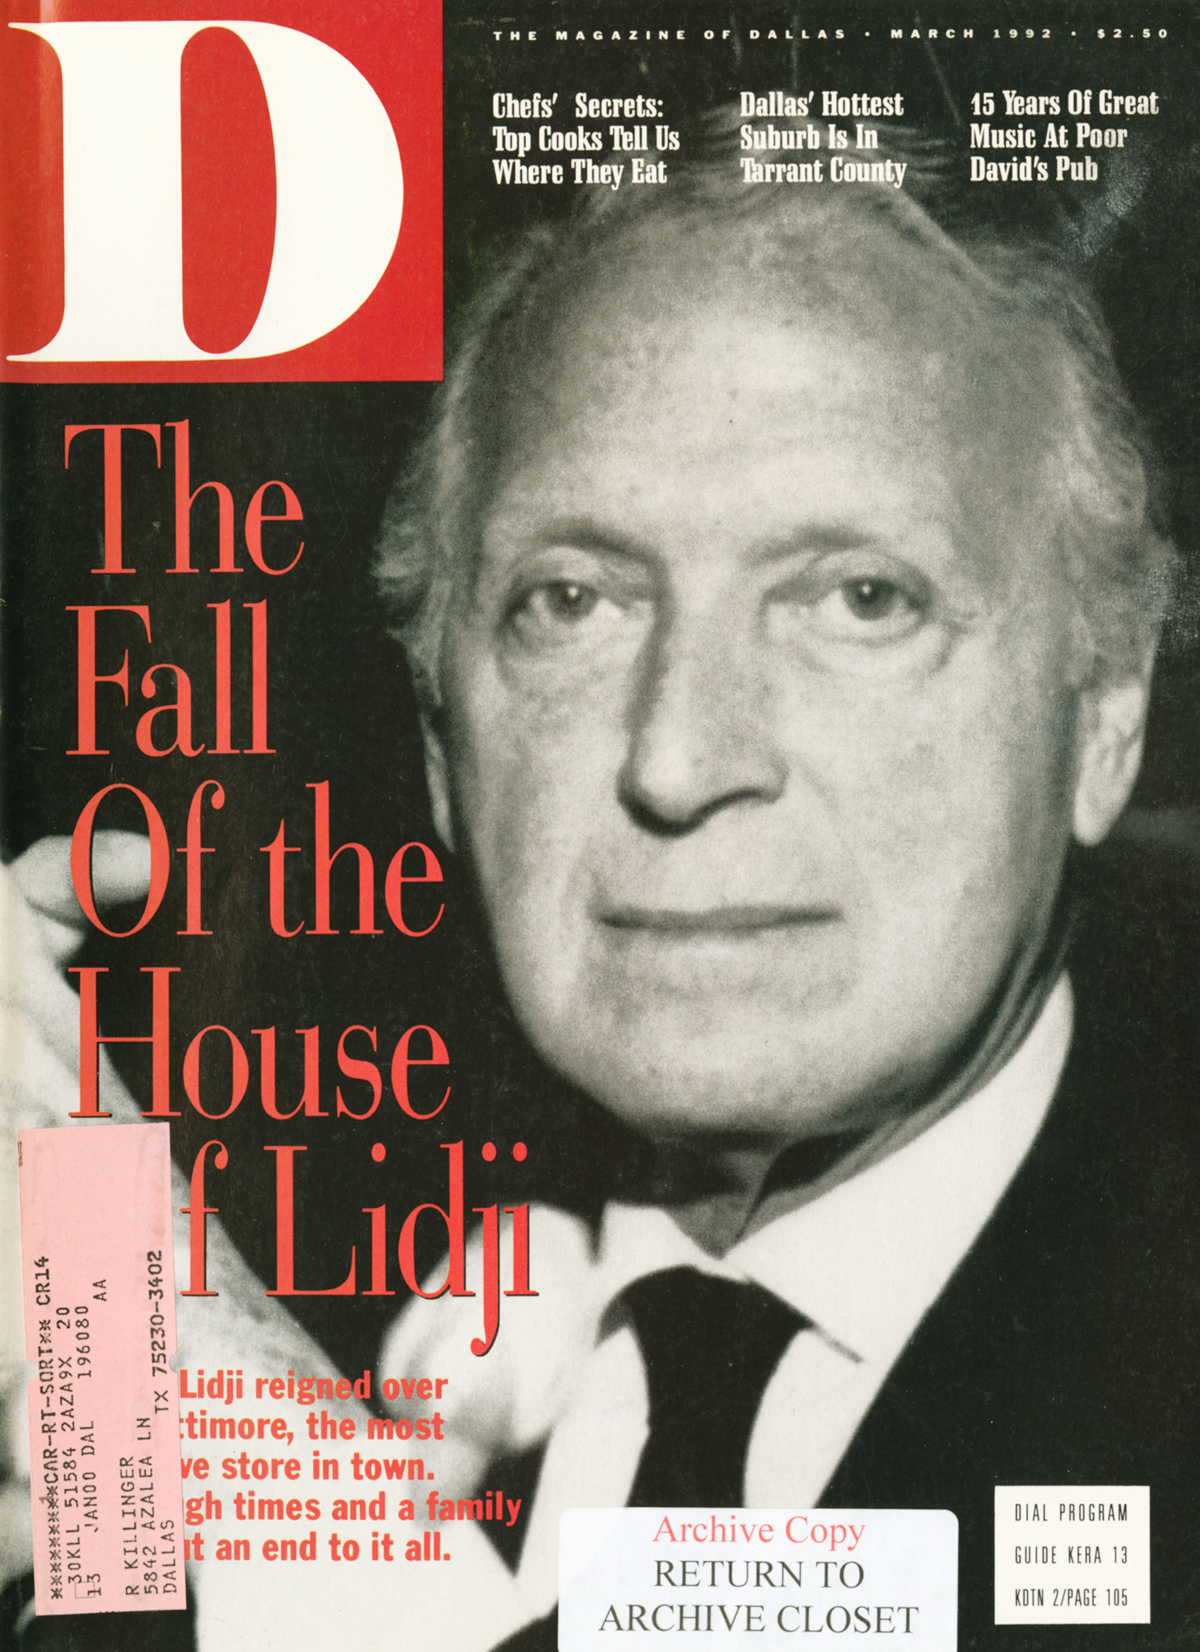 March 1992 cover